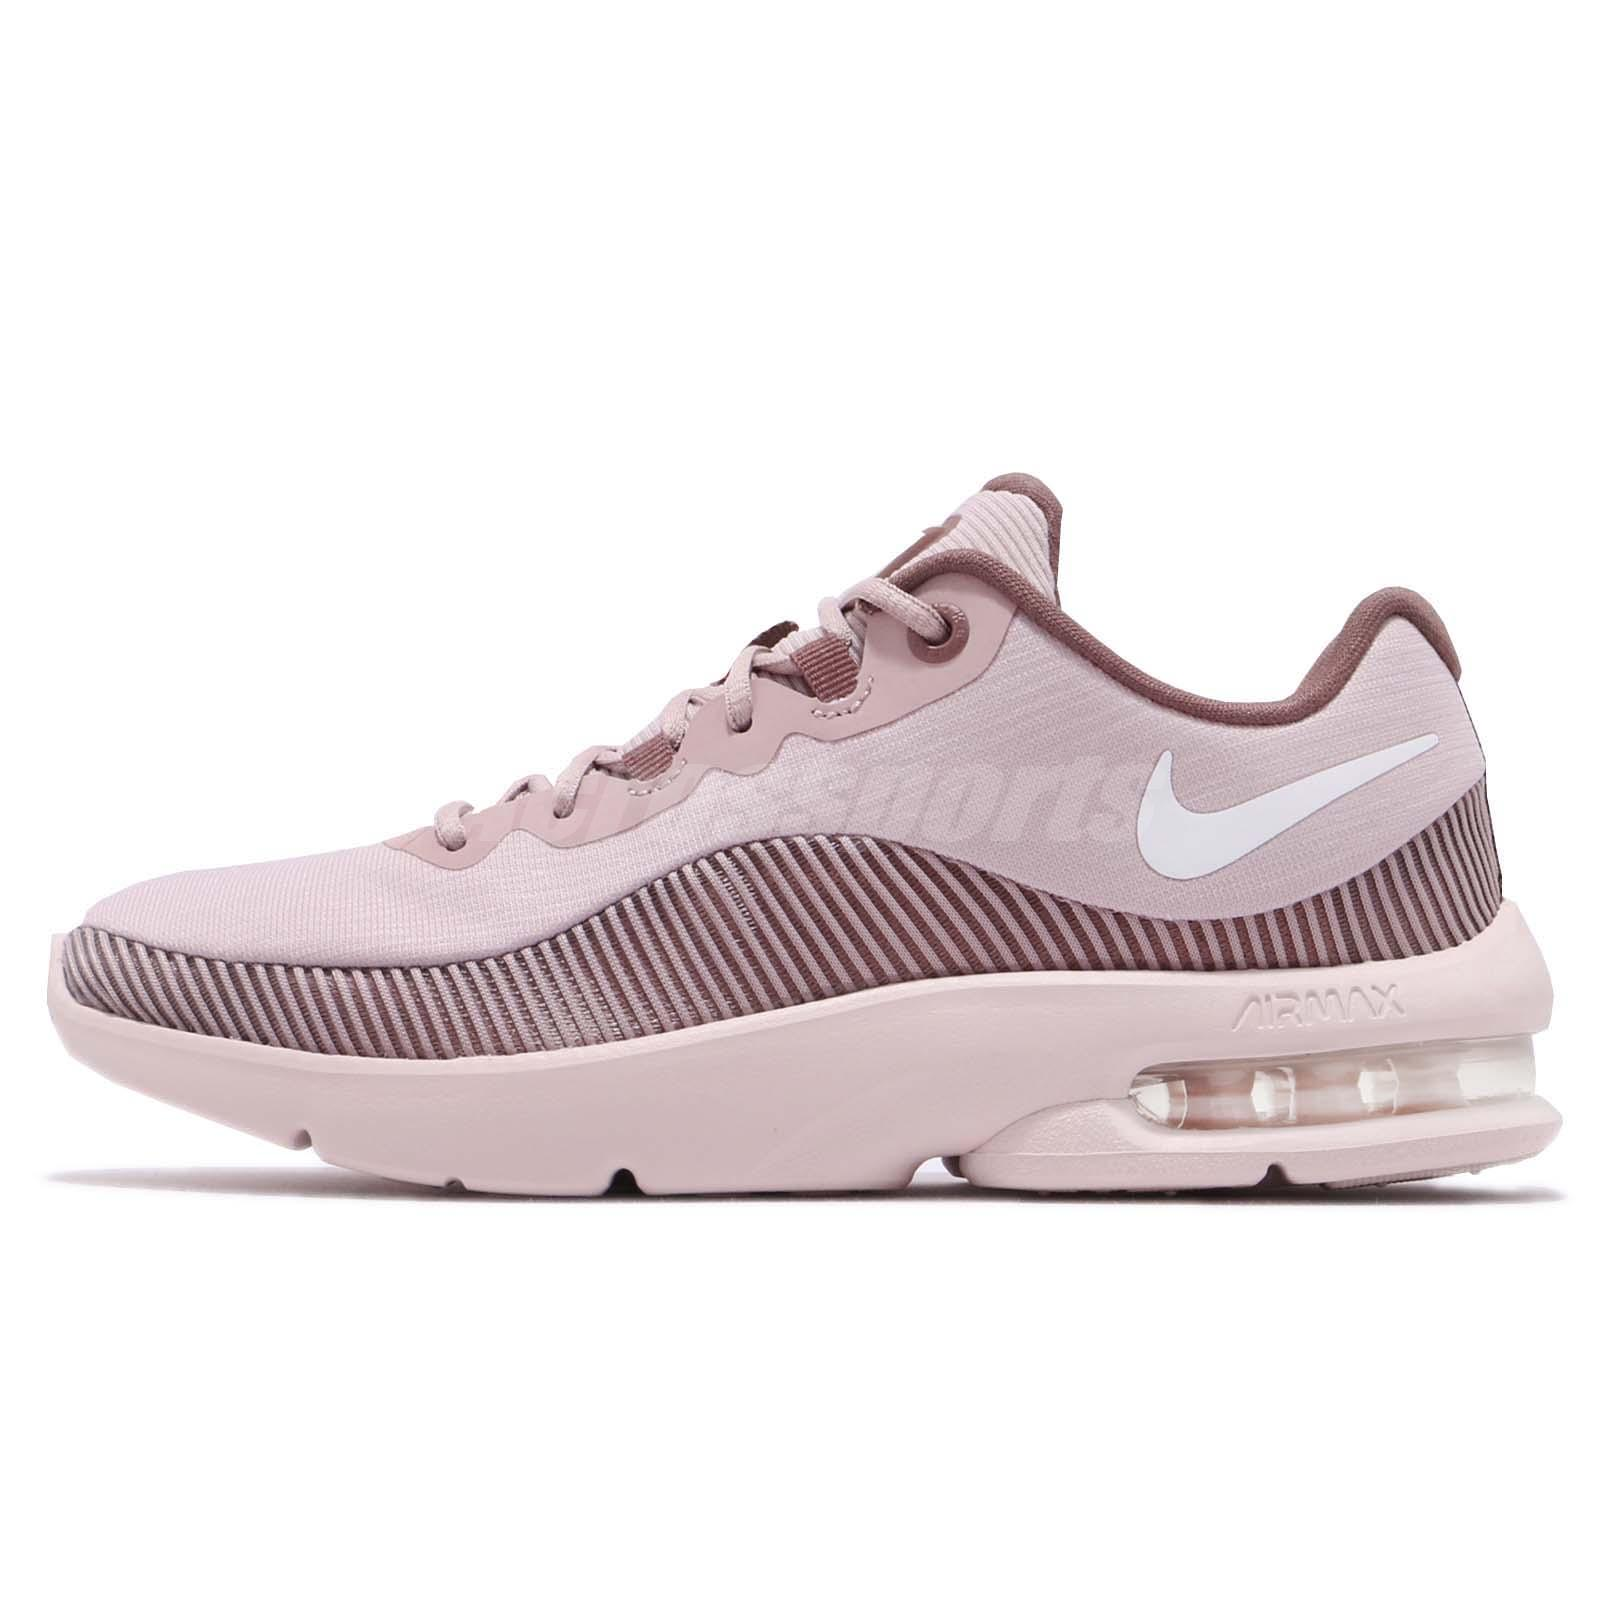 7e47c52449f9 Nike Wmns Air Max Advantage 2 II Particle Rose Pink White Women Shoes AA7407 -601